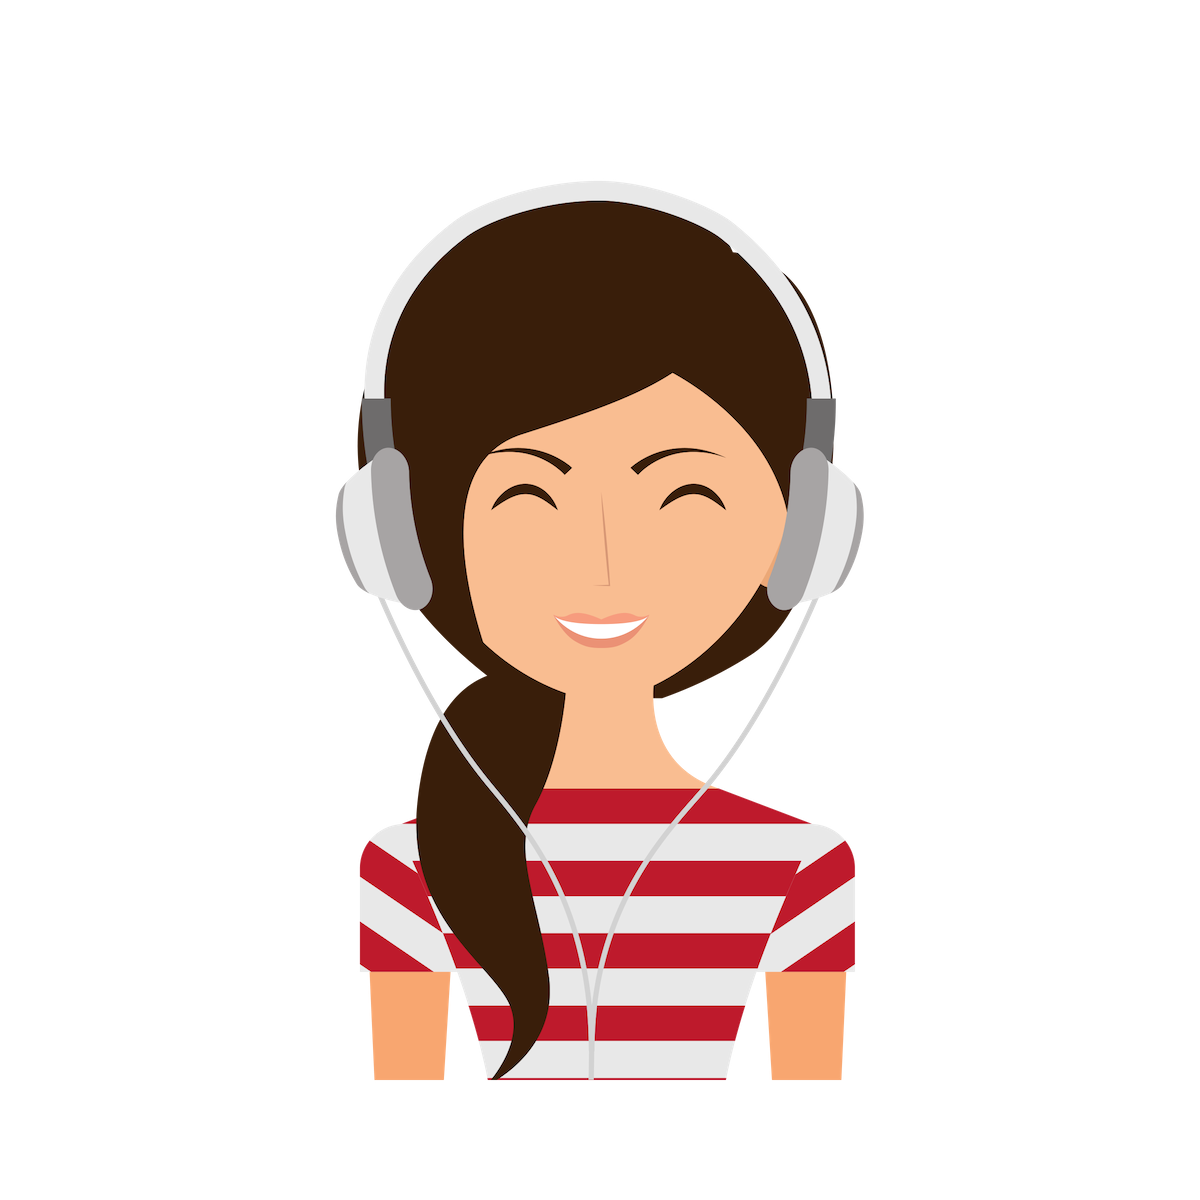 Audio Files - You'll also get audio files of each lesson so that you can listen on the go!